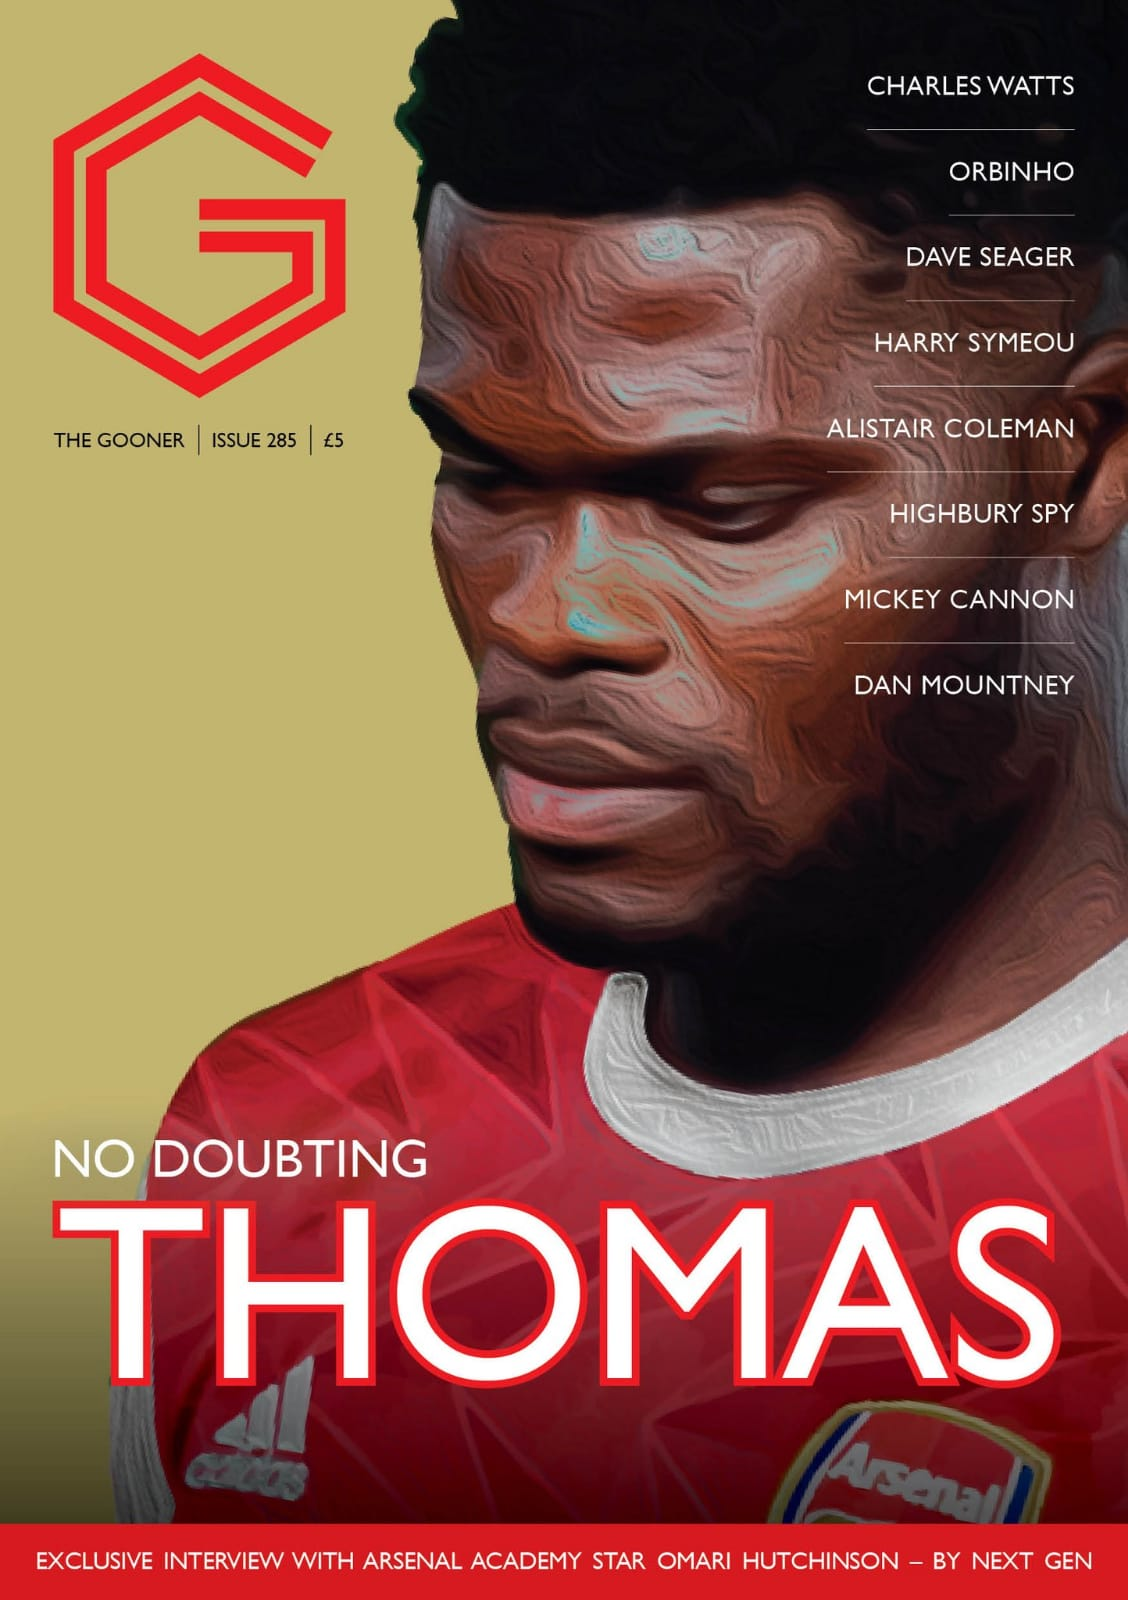 Current Issue - The Gooner 285 (Rest of World/Outside Europe)